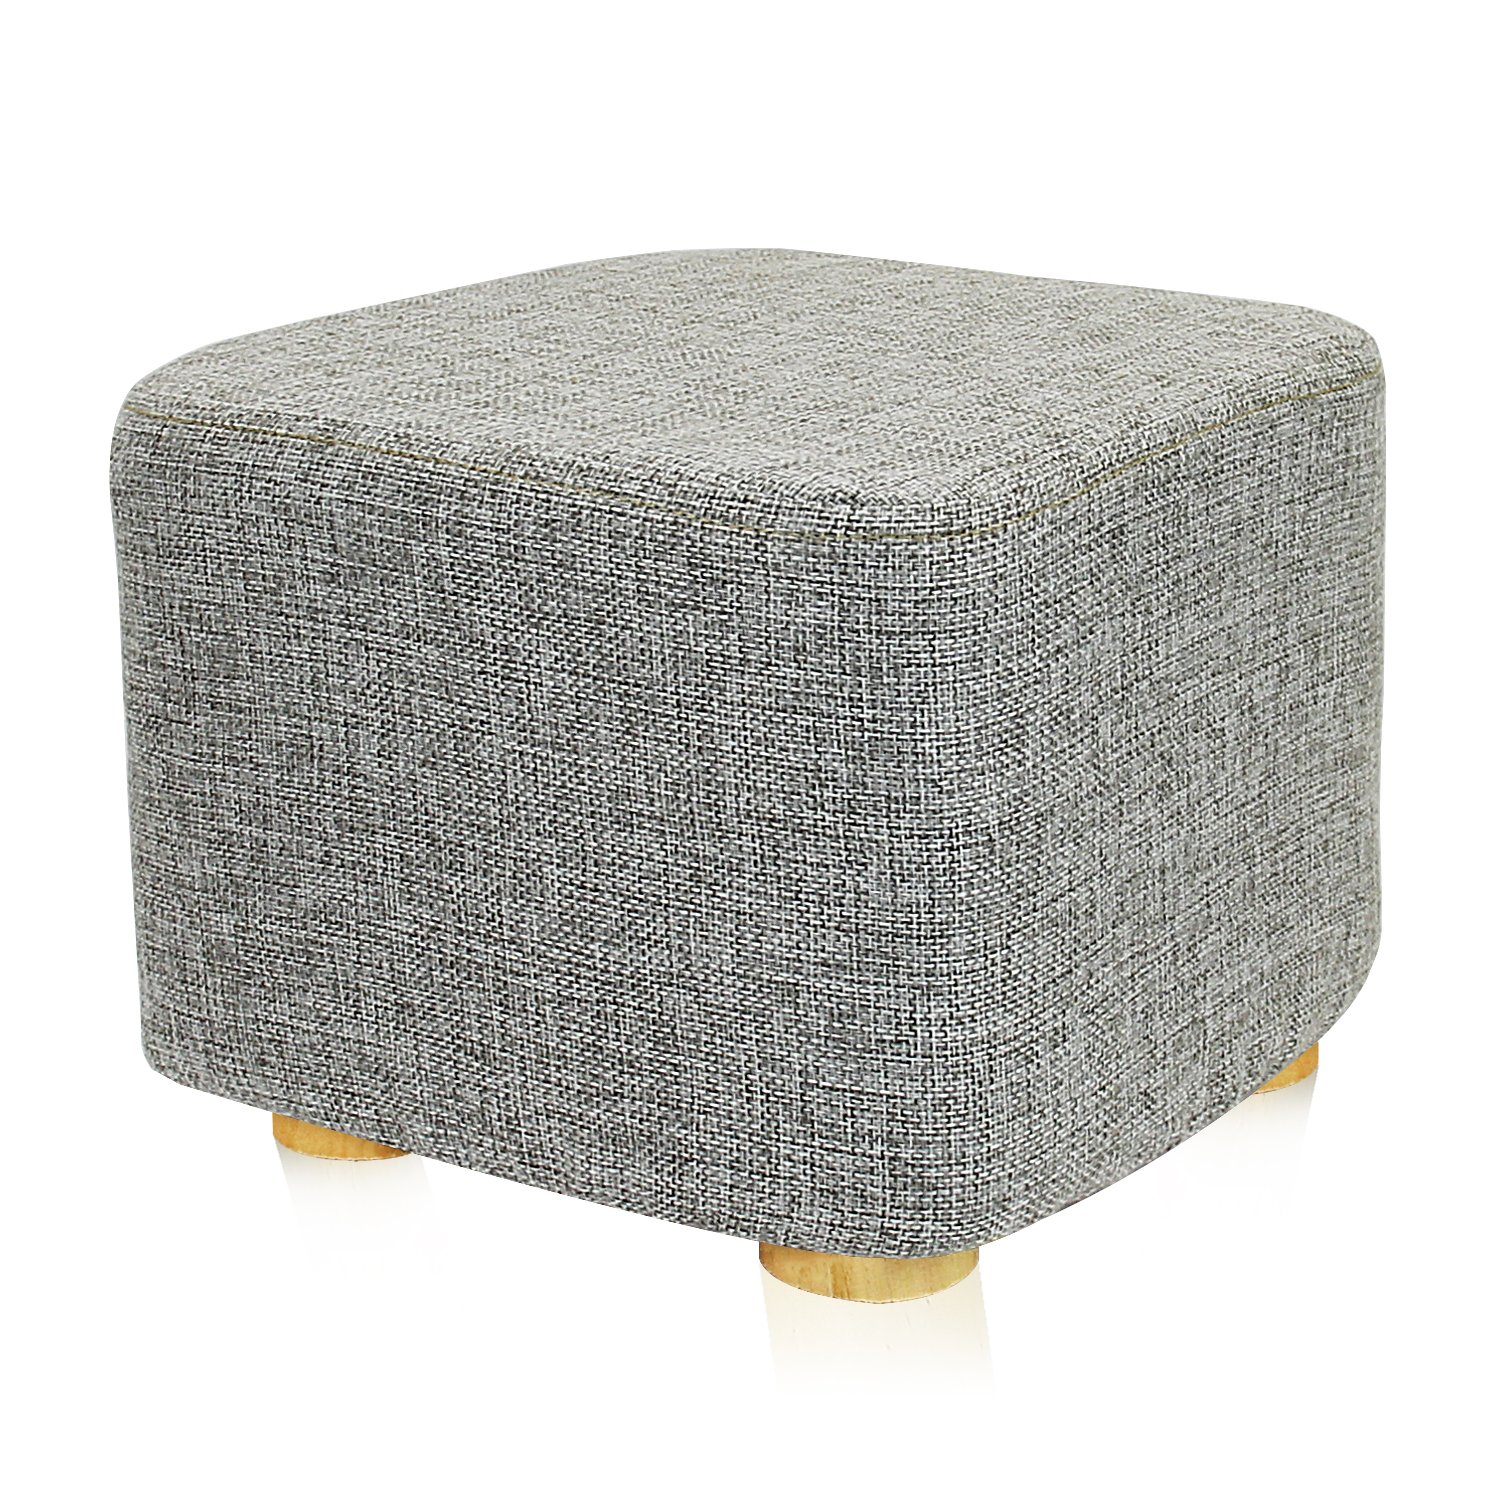 DL furniture - Square Ottoman Foot Stool, 4 Leg Stands, Short Leg, Square Shape | Linen Fabric, Gray